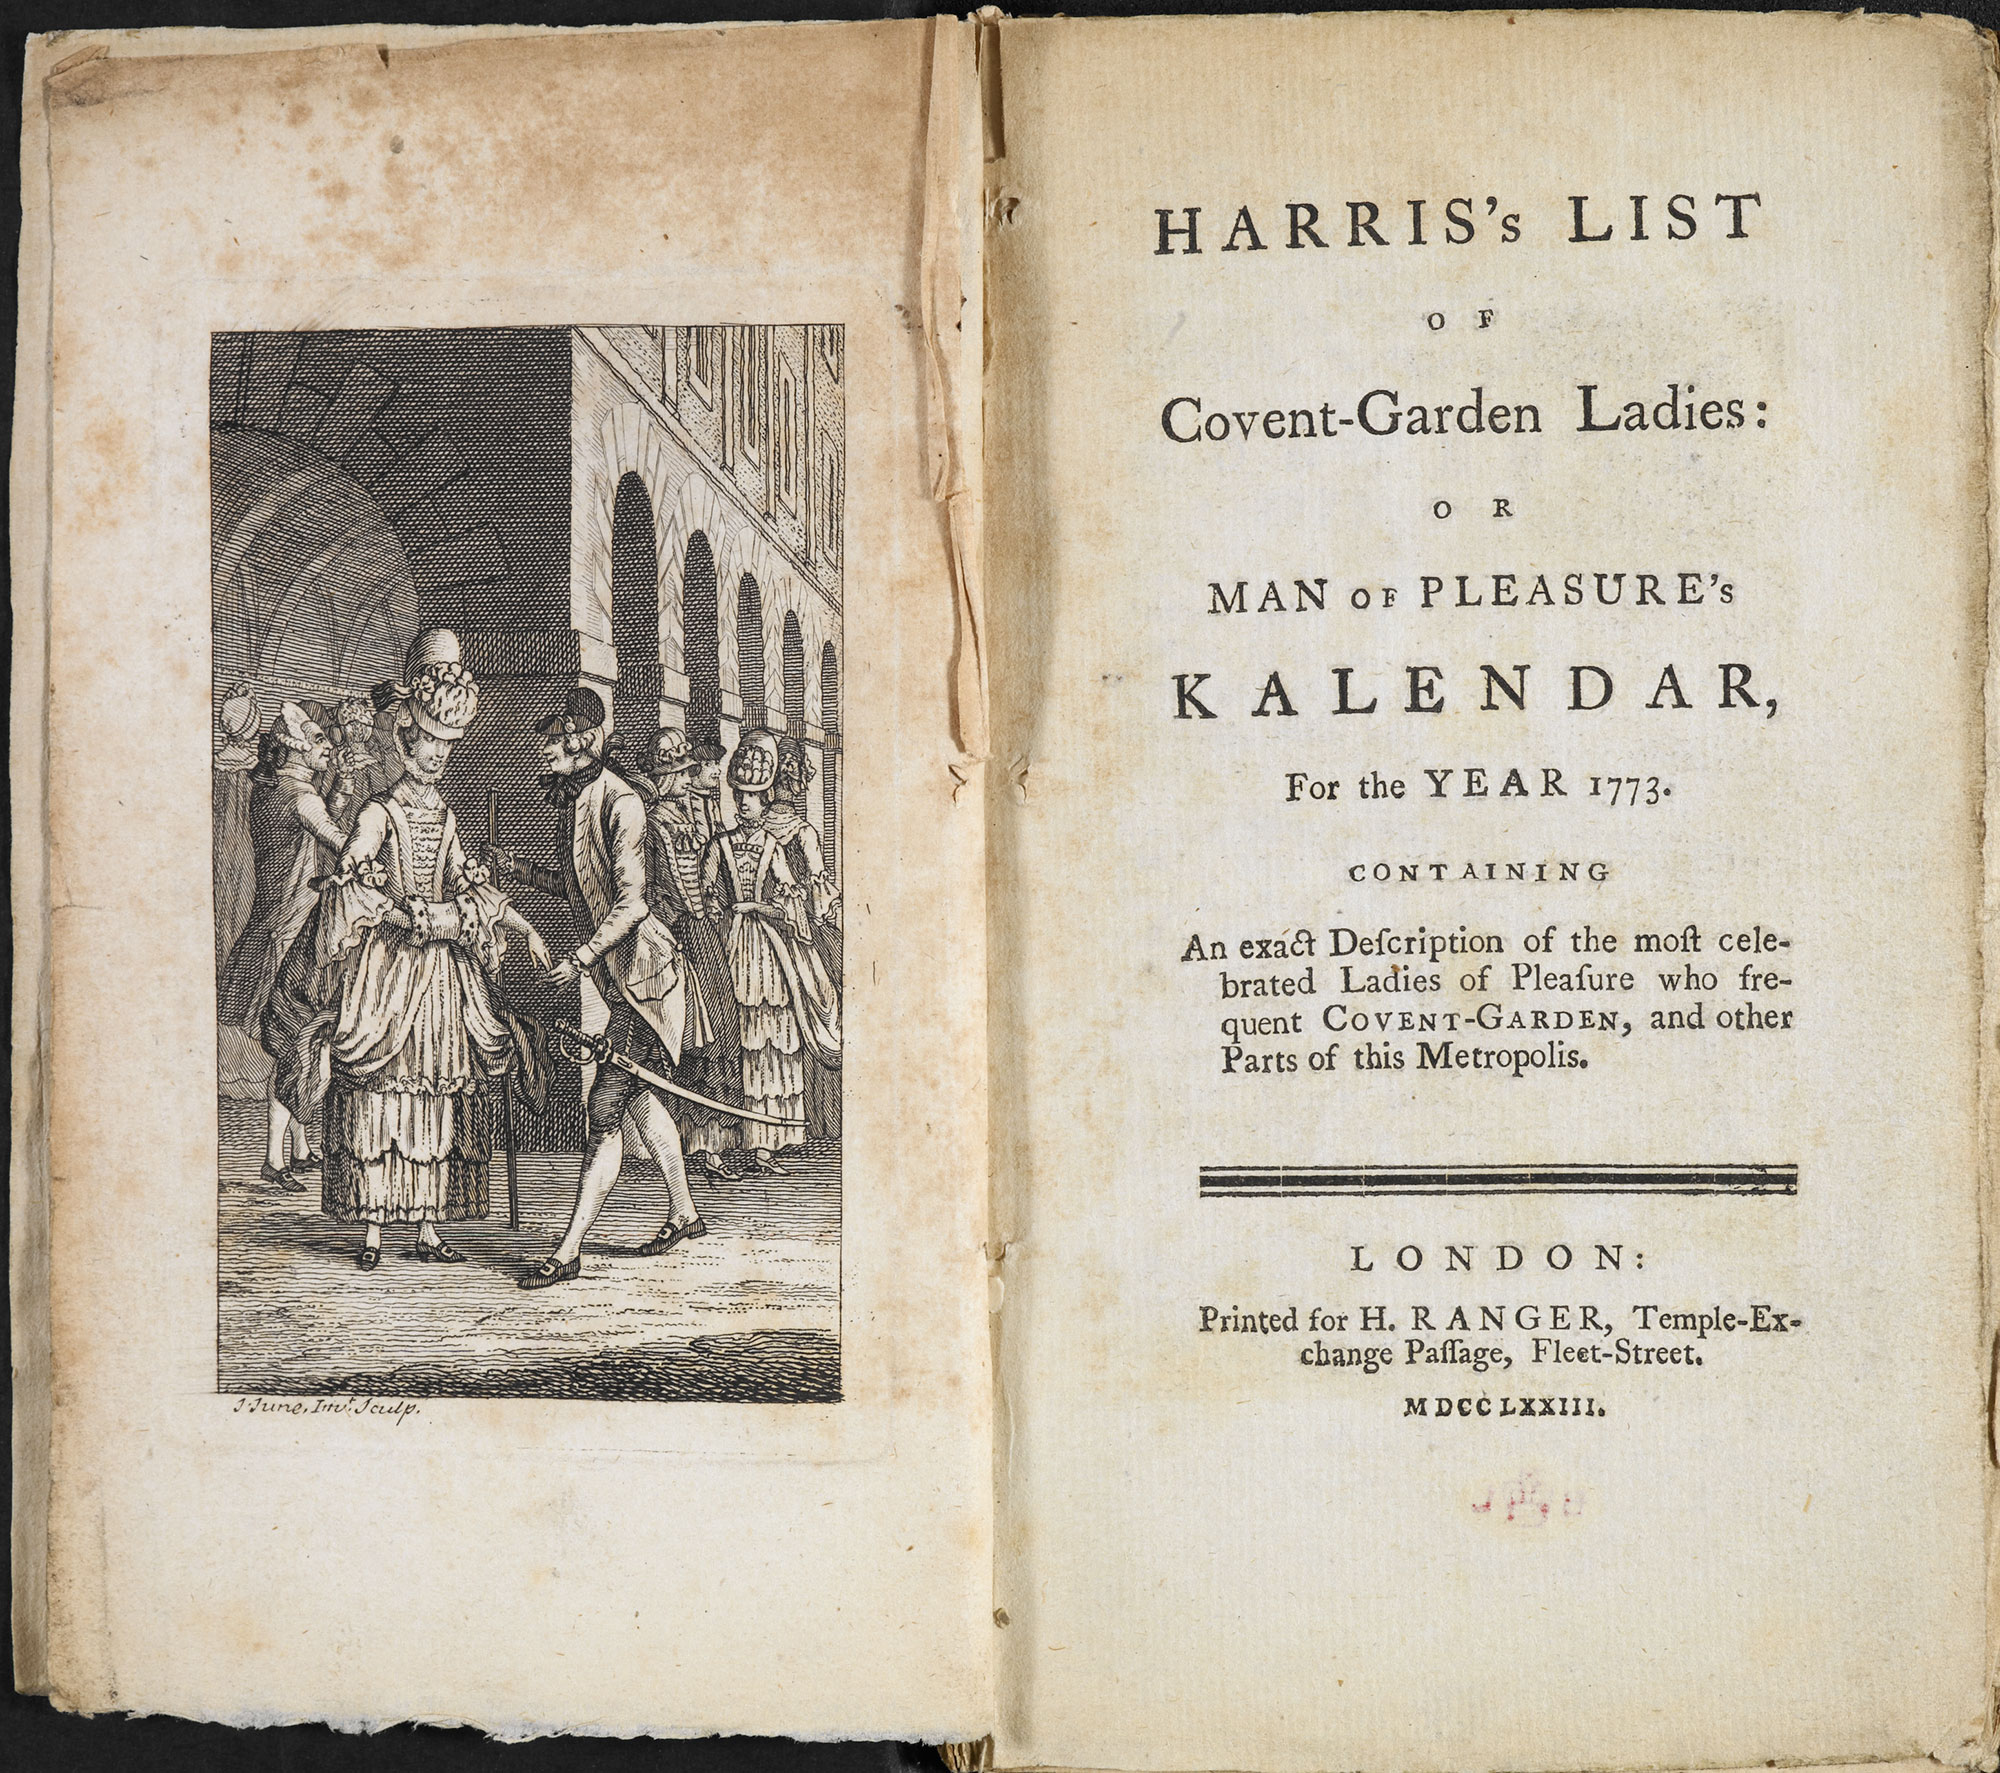 Harris's List of Covent-Garden Ladies, an 18th century guide